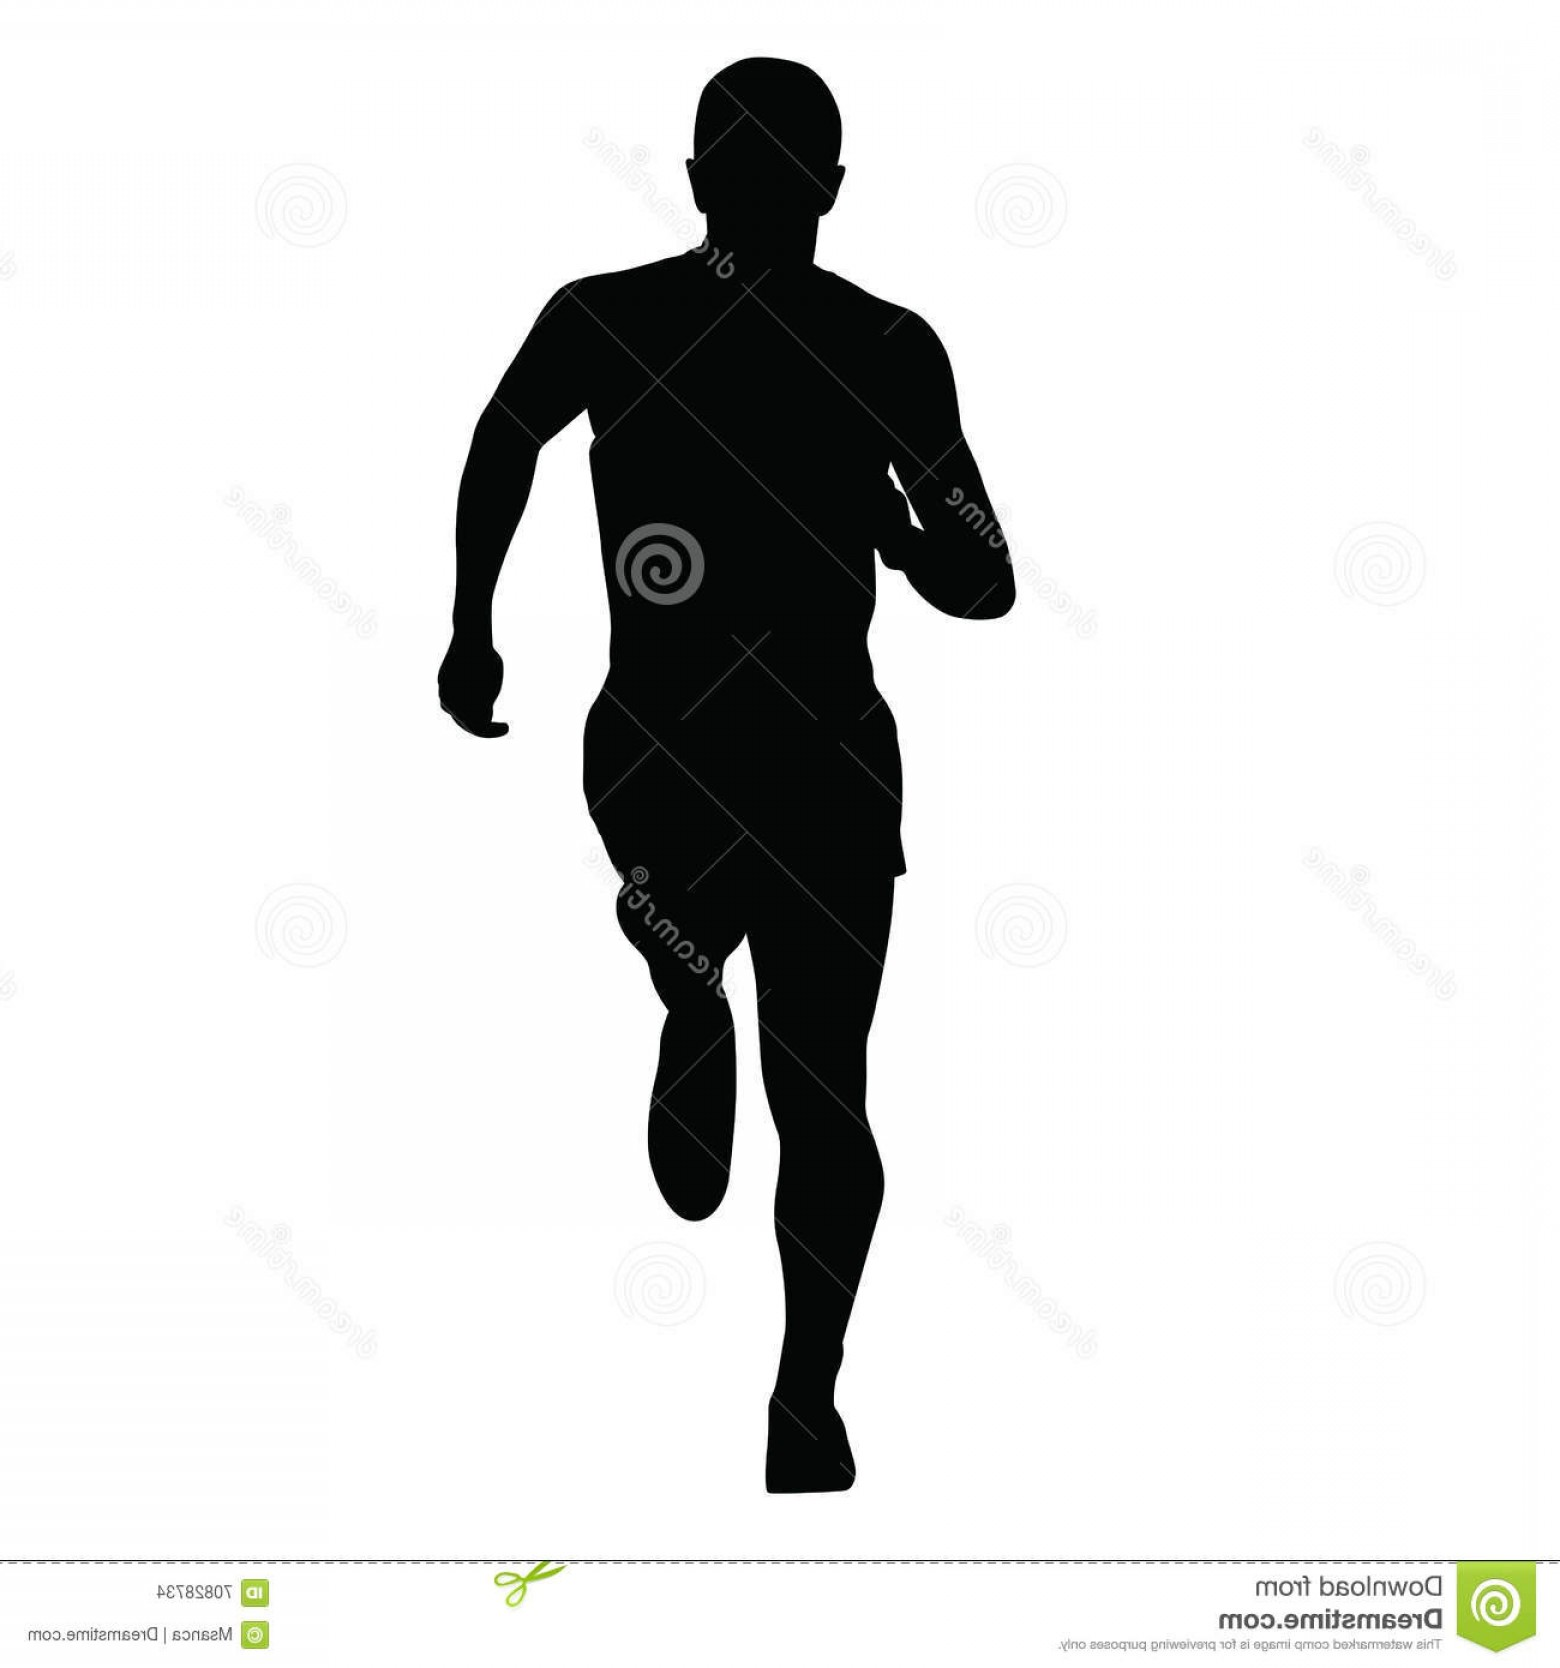 Male Silhouette Vector Art: Stock Illustration Runner Vector Silhouette Isolated Running Man Front View Image